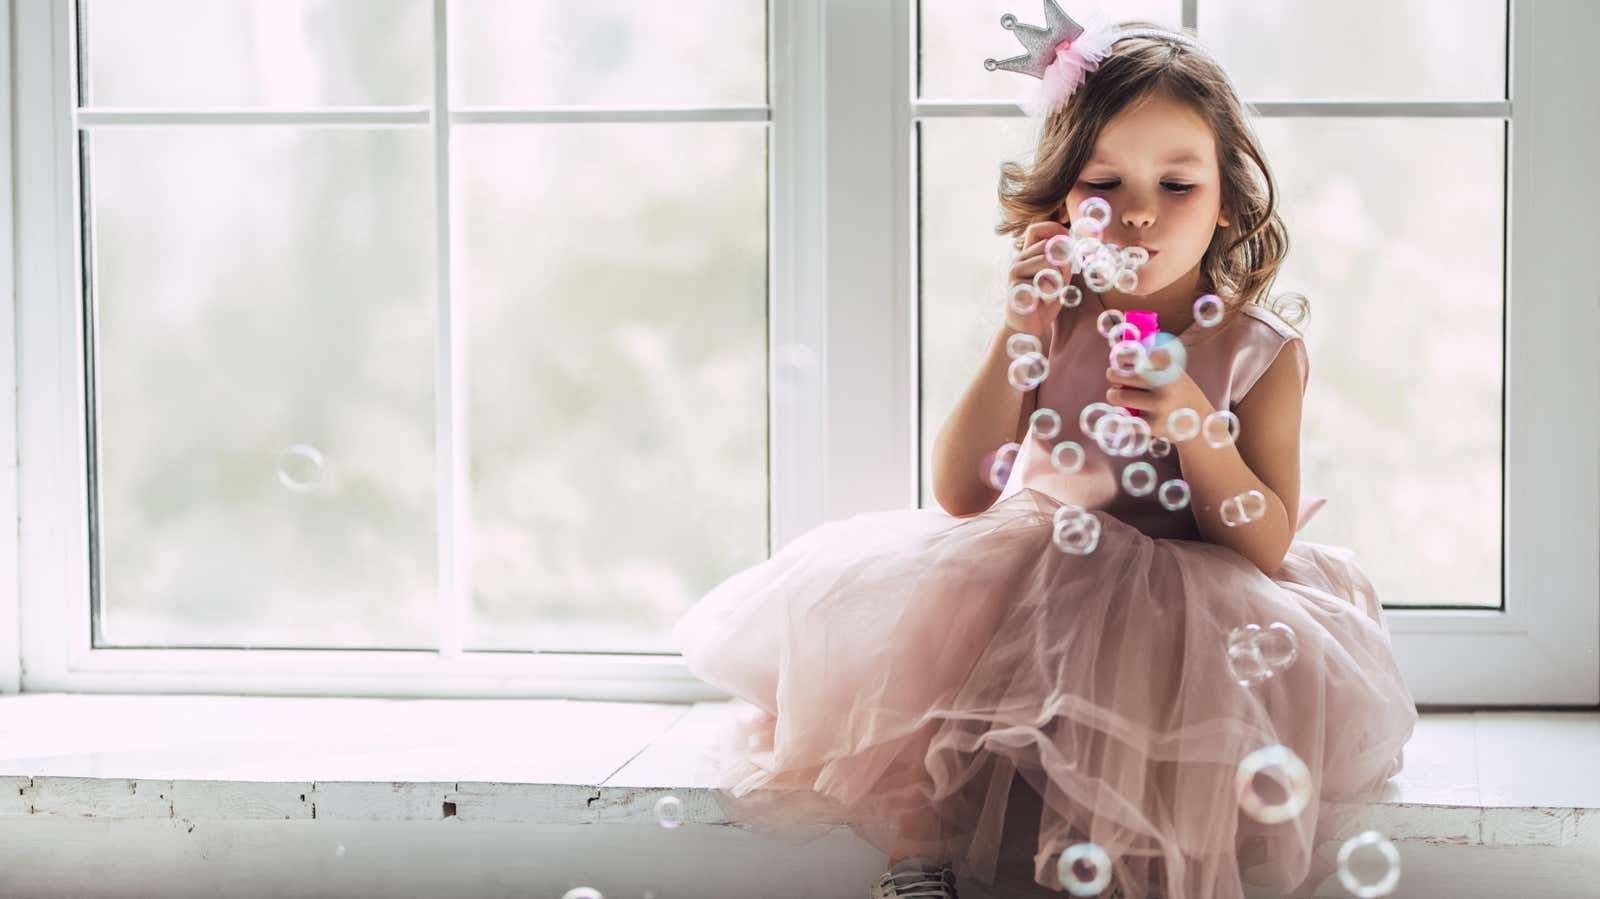 What to Say to Little Girls Instead of 'You Look So Pretty'